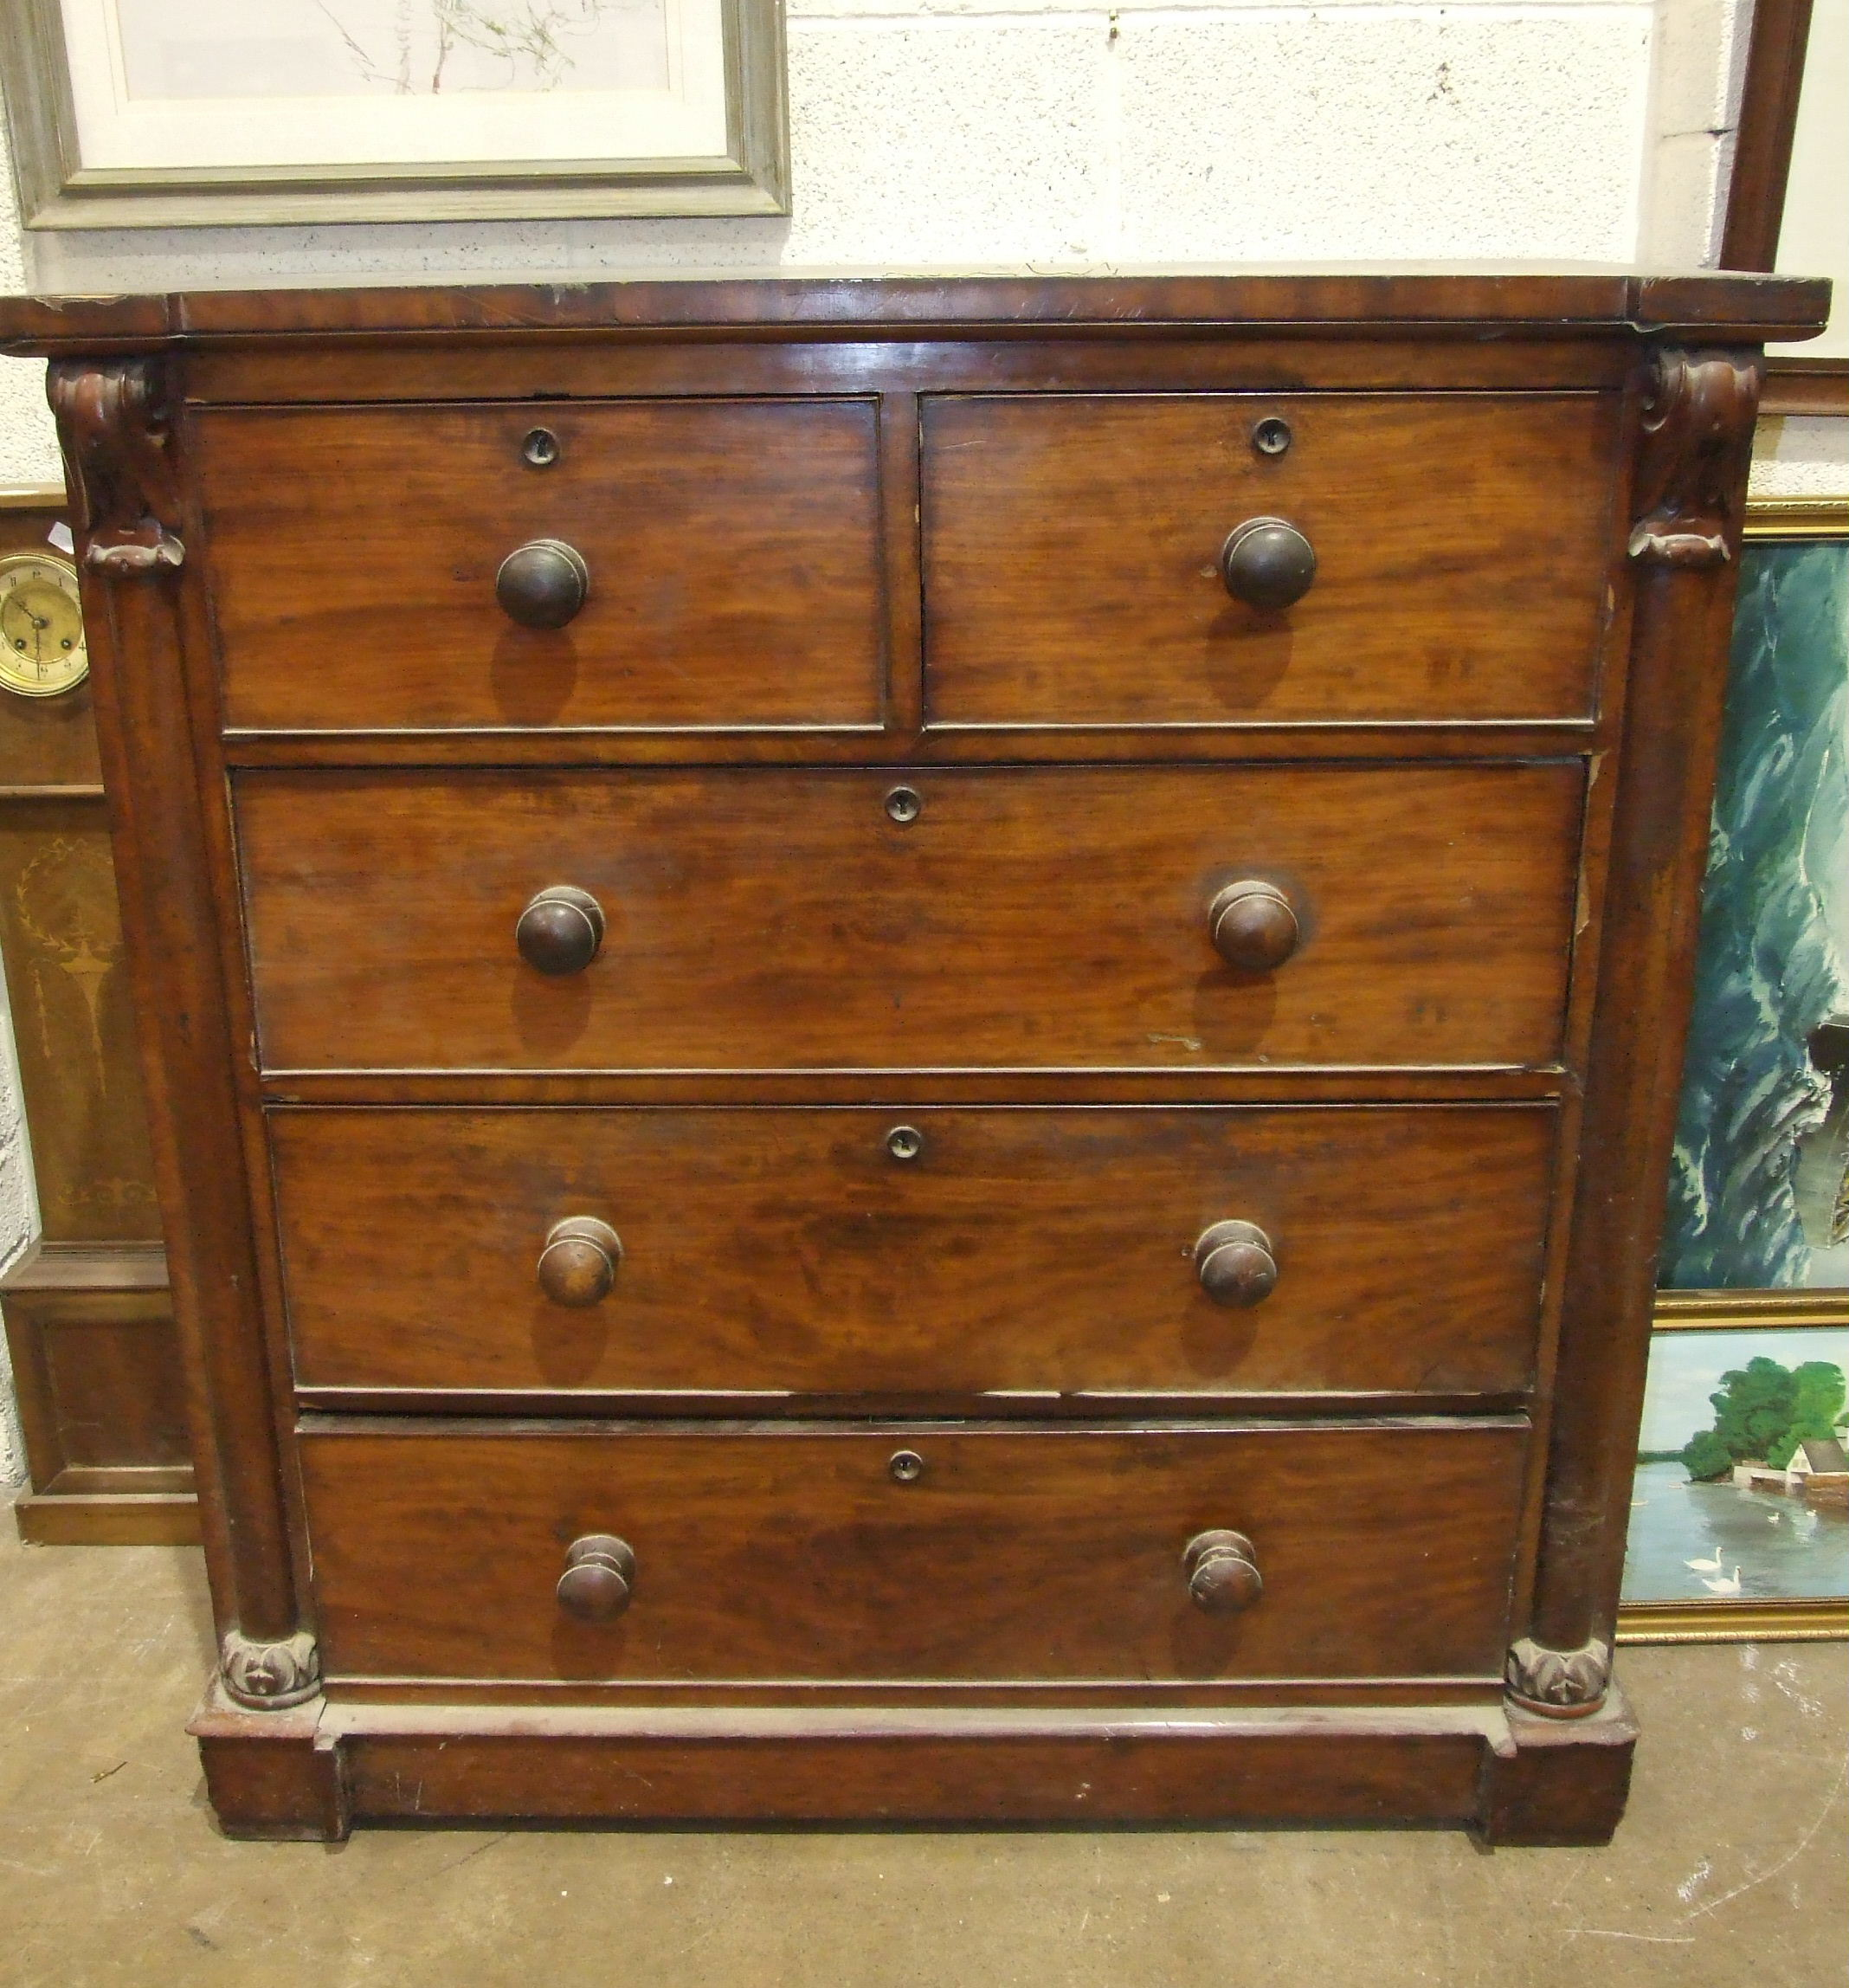 Lot 5 - A 19th century mahogany straight-front chest of two short and three long cock-beaded drawers